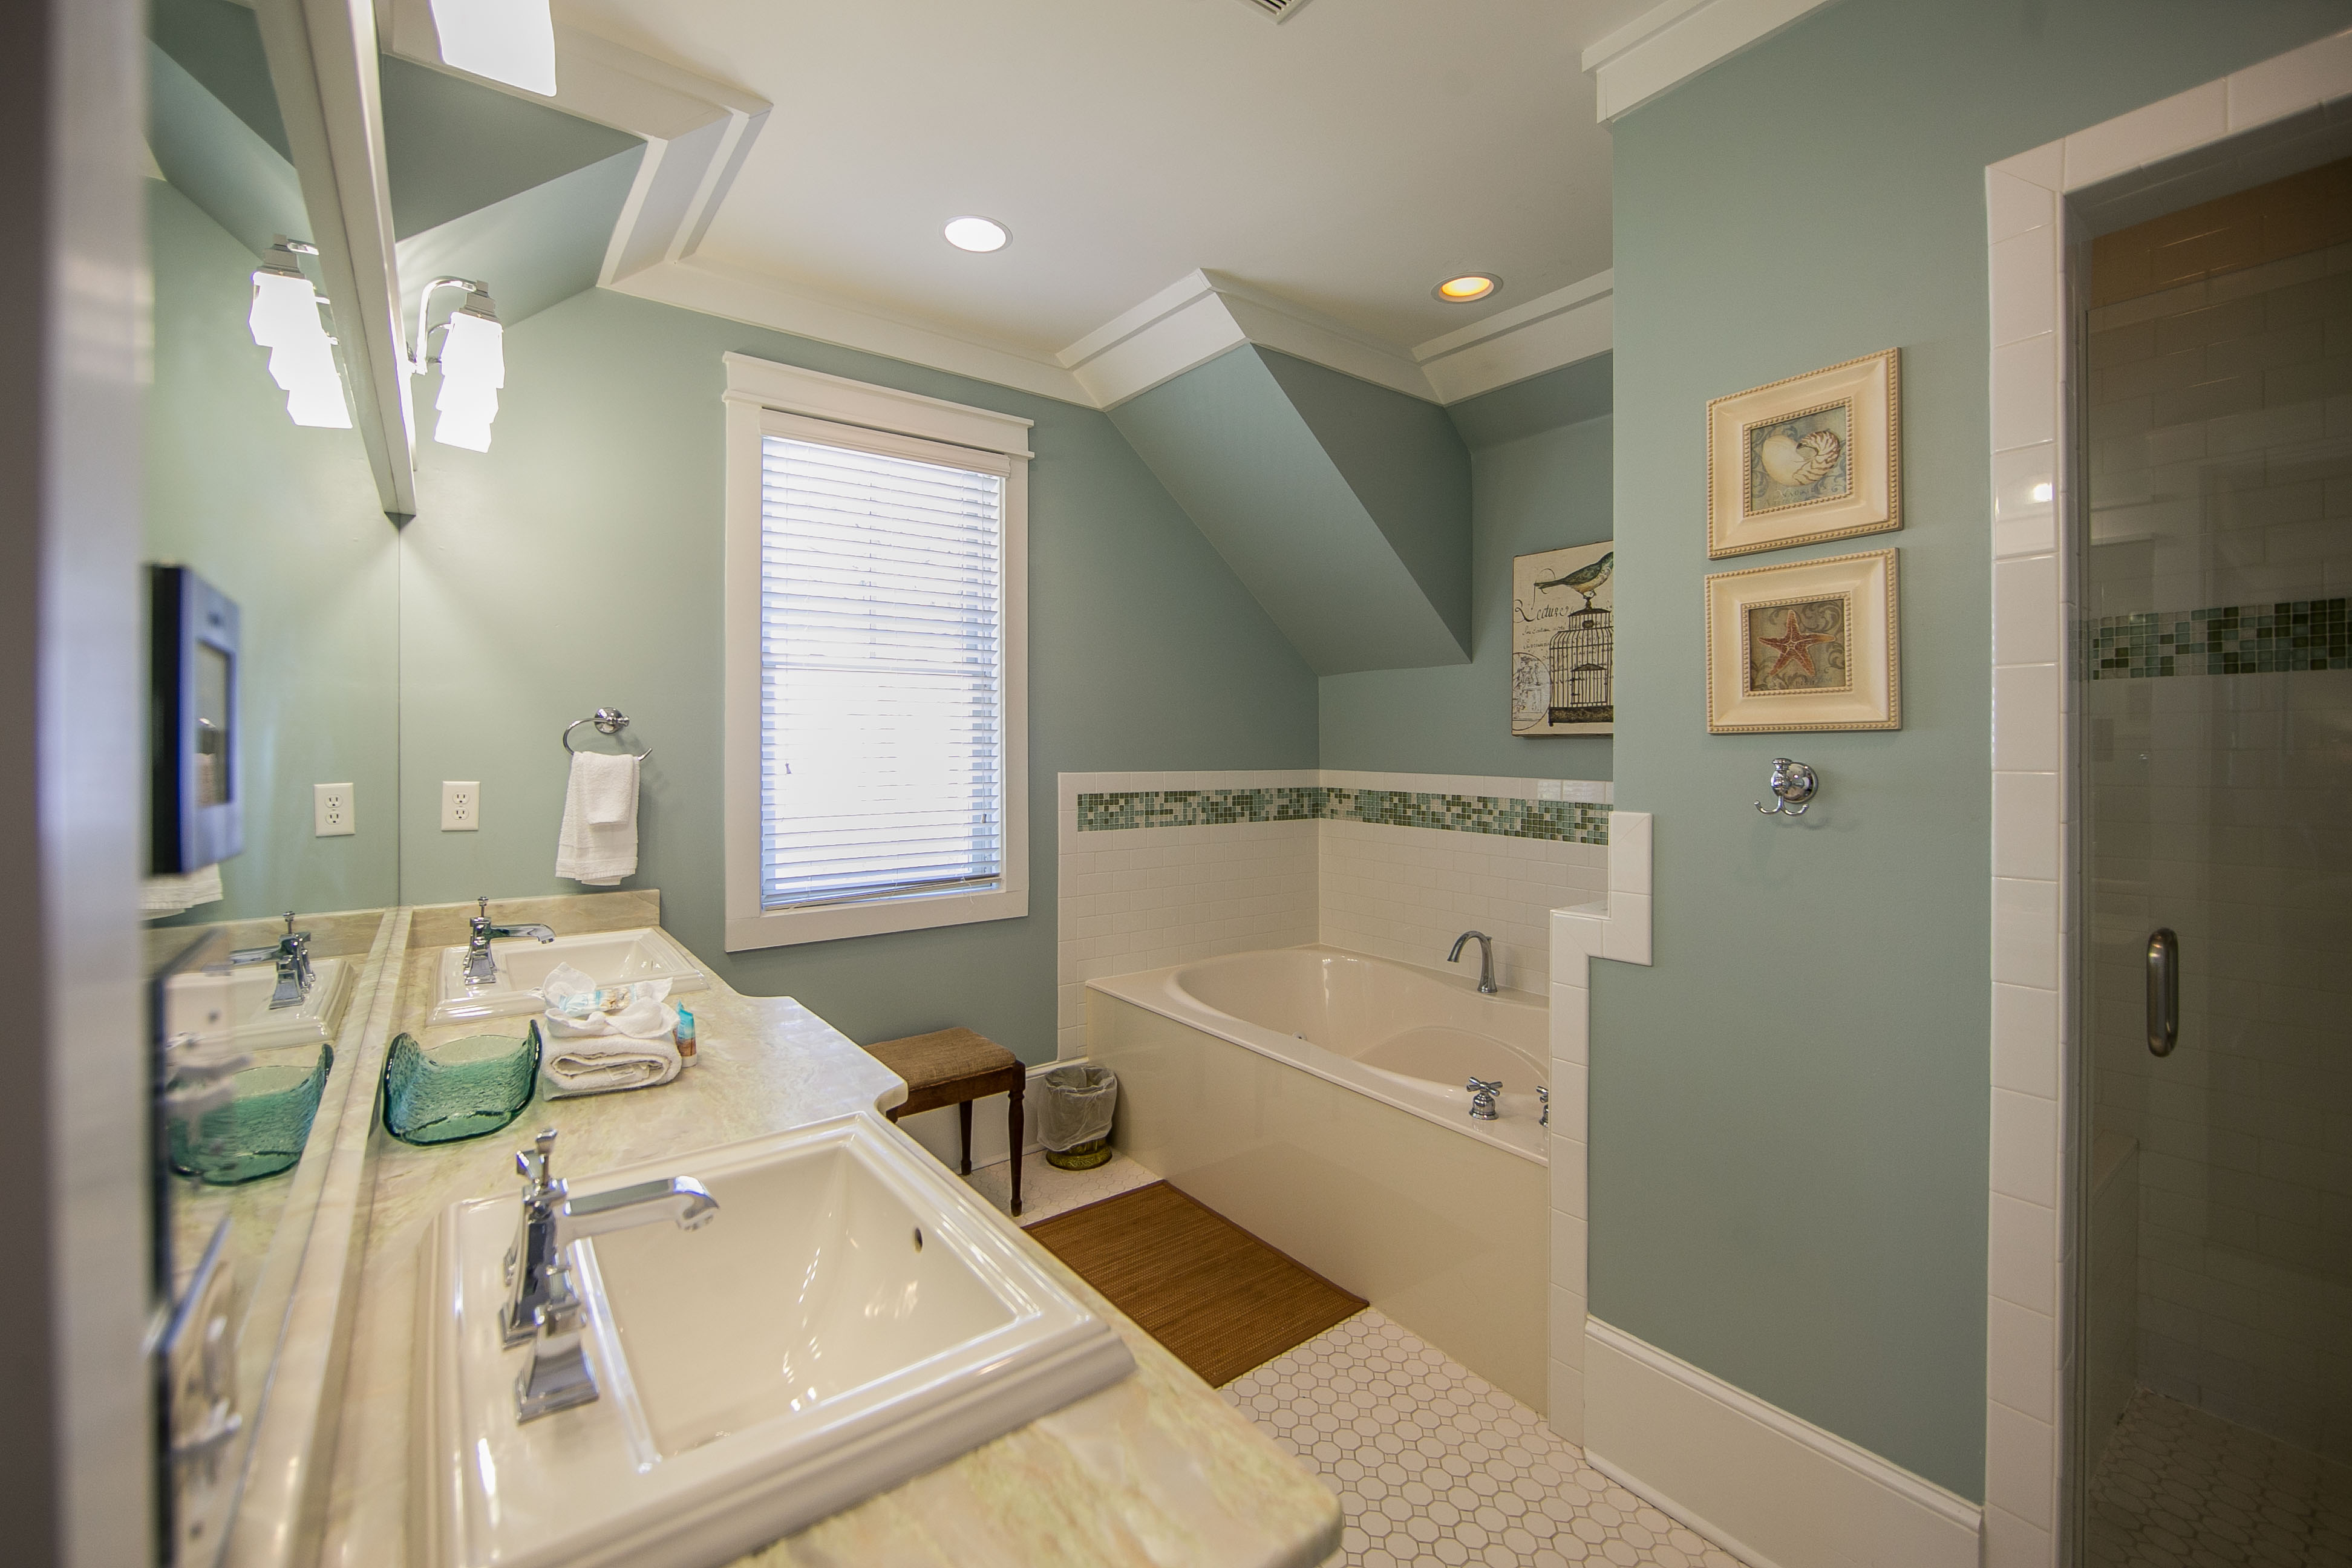 King Master ensuite bathroom with separate water closet, soaking tub and walk-in shower